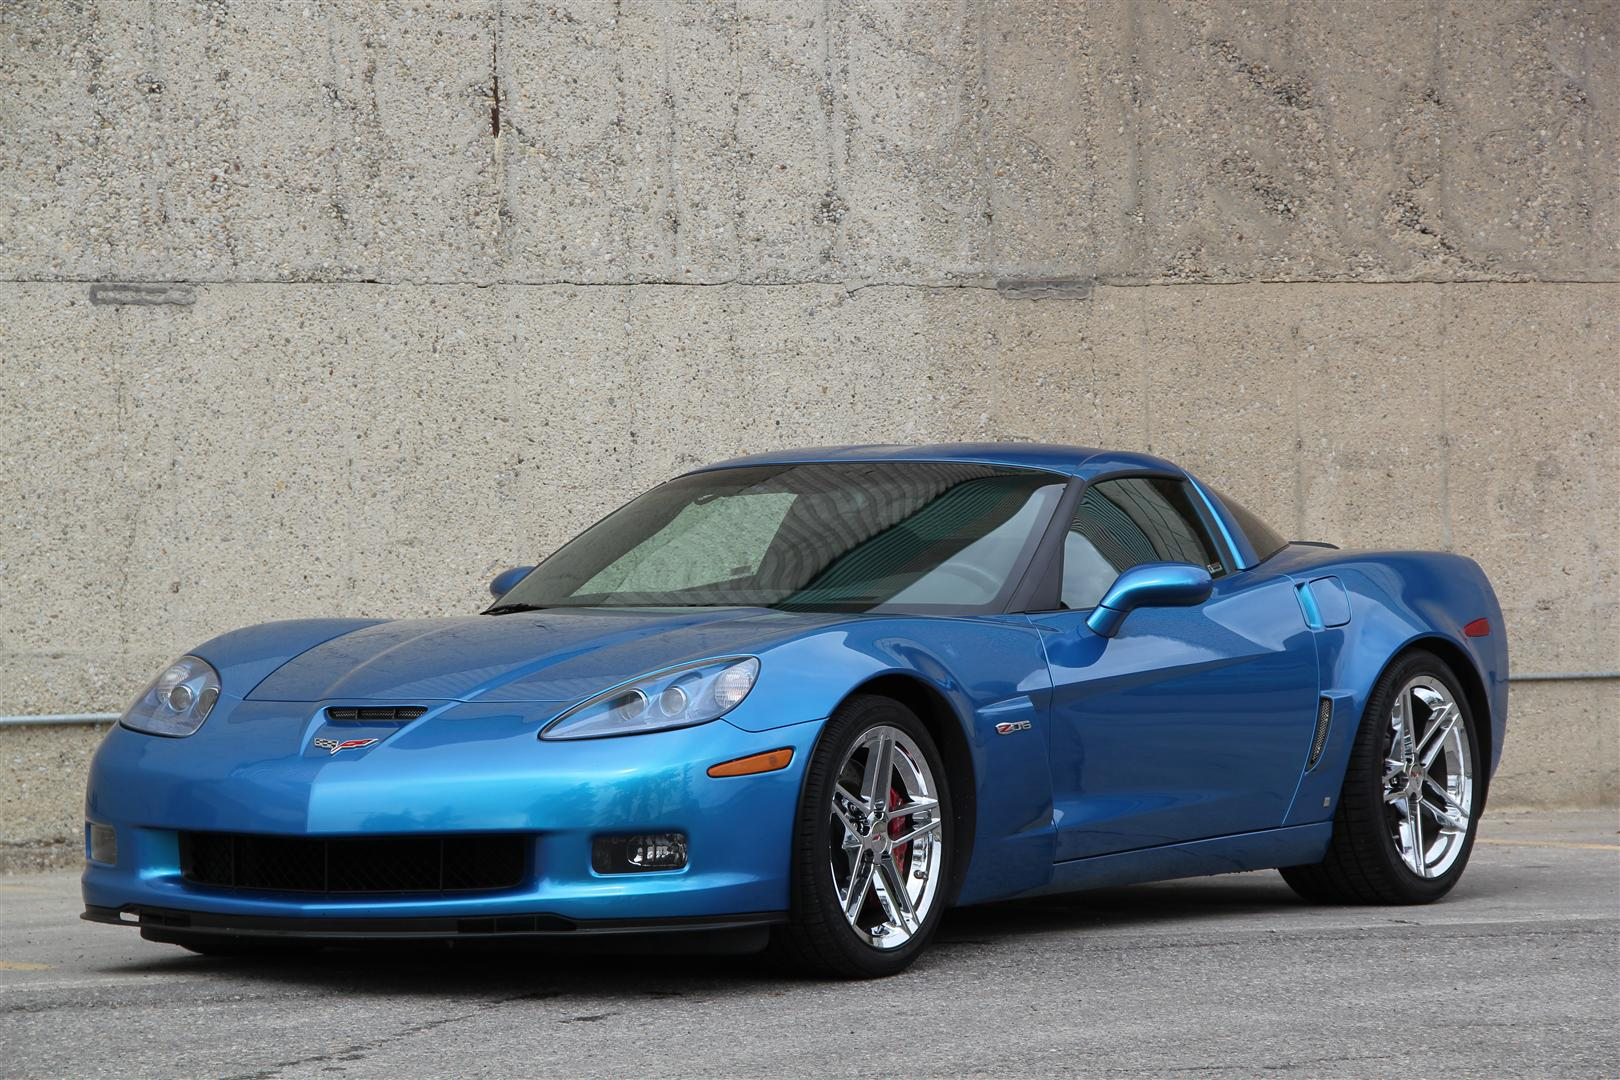 2008 chevrolet corvette z06 3lz navigation 505hp. Black Bedroom Furniture Sets. Home Design Ideas